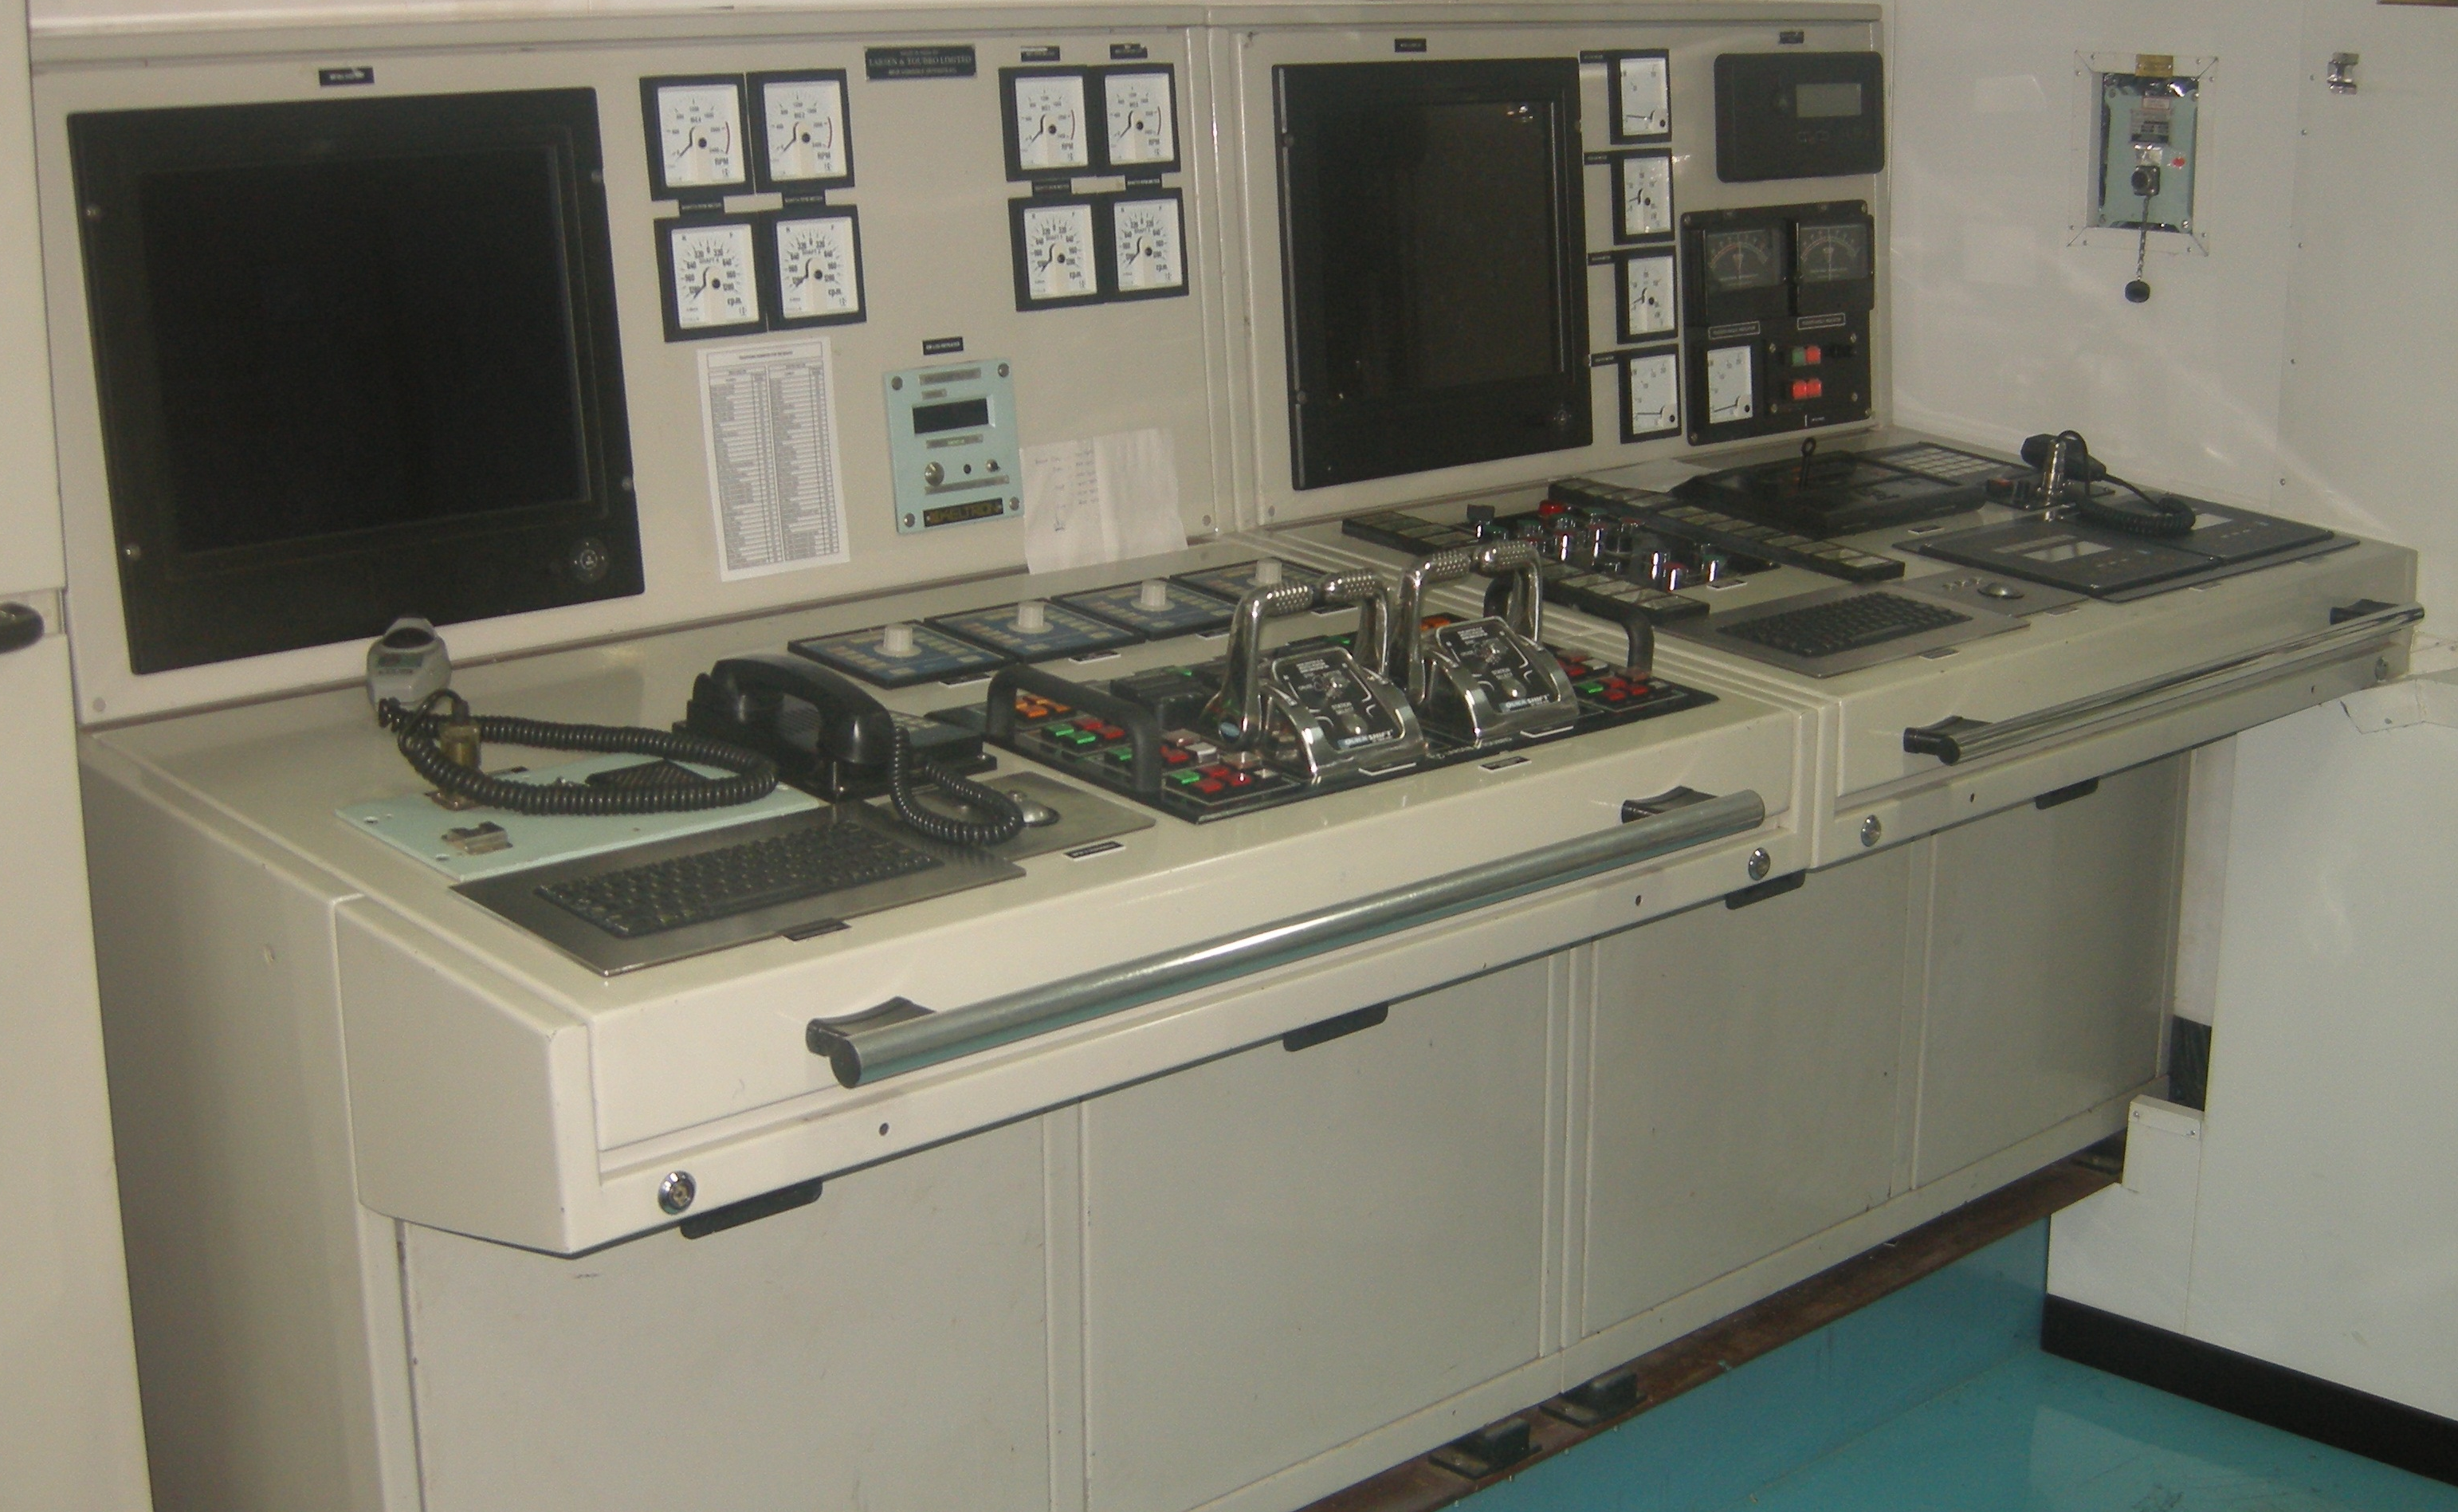 Control Systems (Commercial Ships)